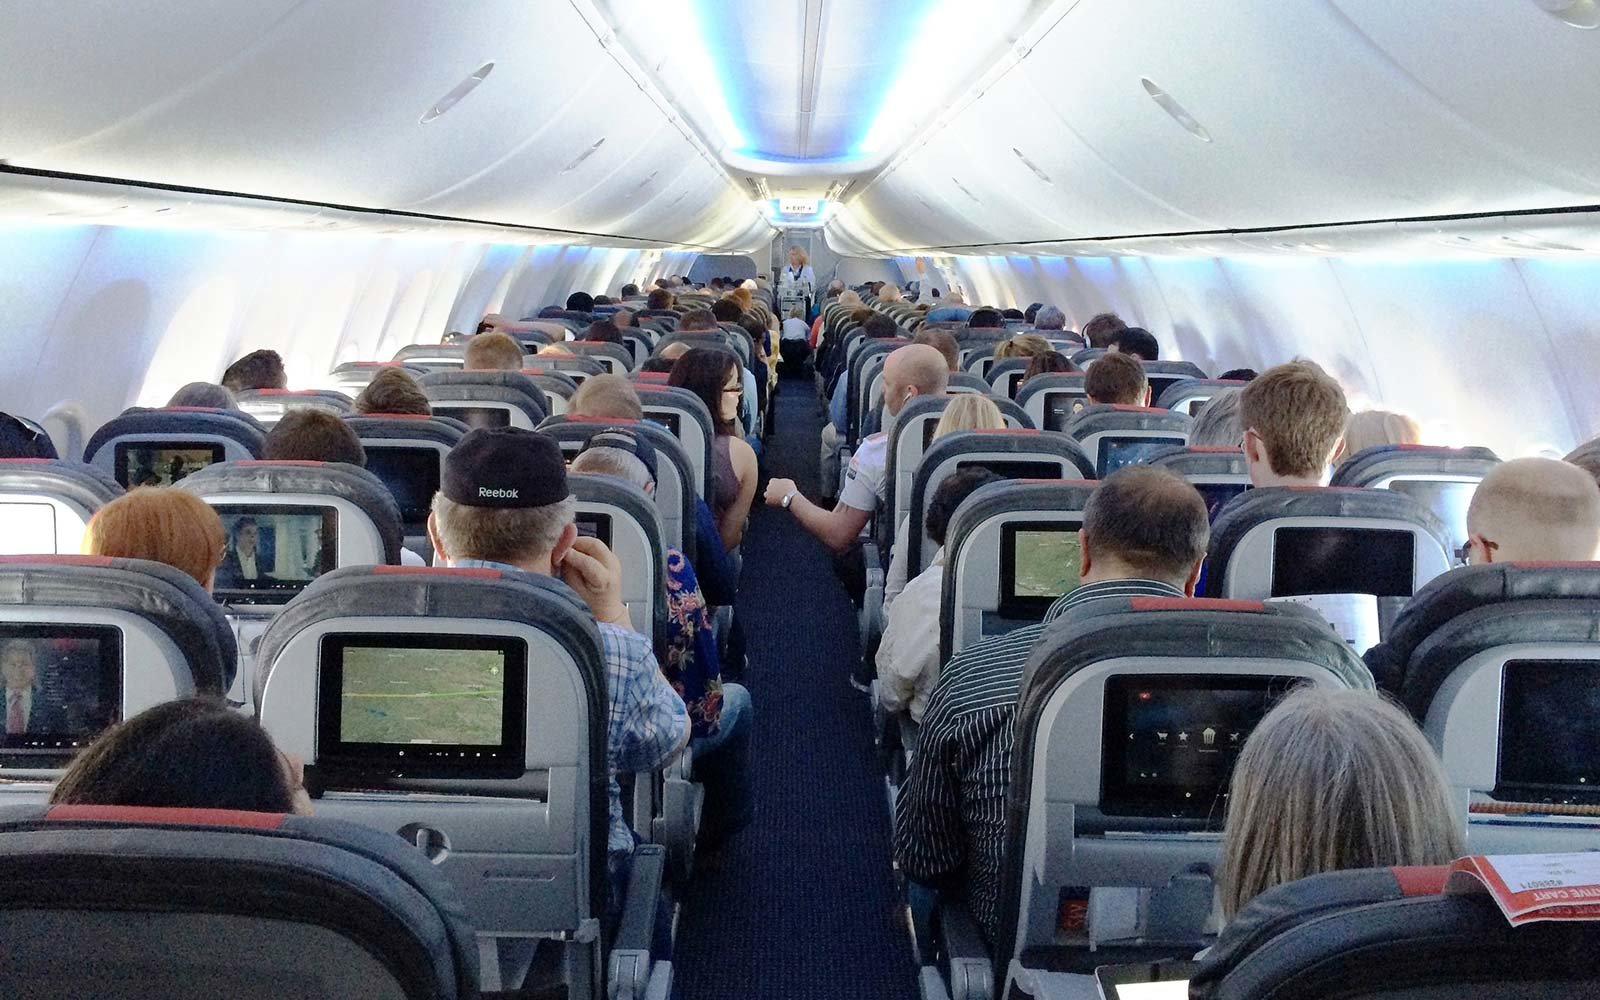 One of American Airlines' new 737s. The cabin gives standard economy passengers less space, but also an entertainment system to distract them